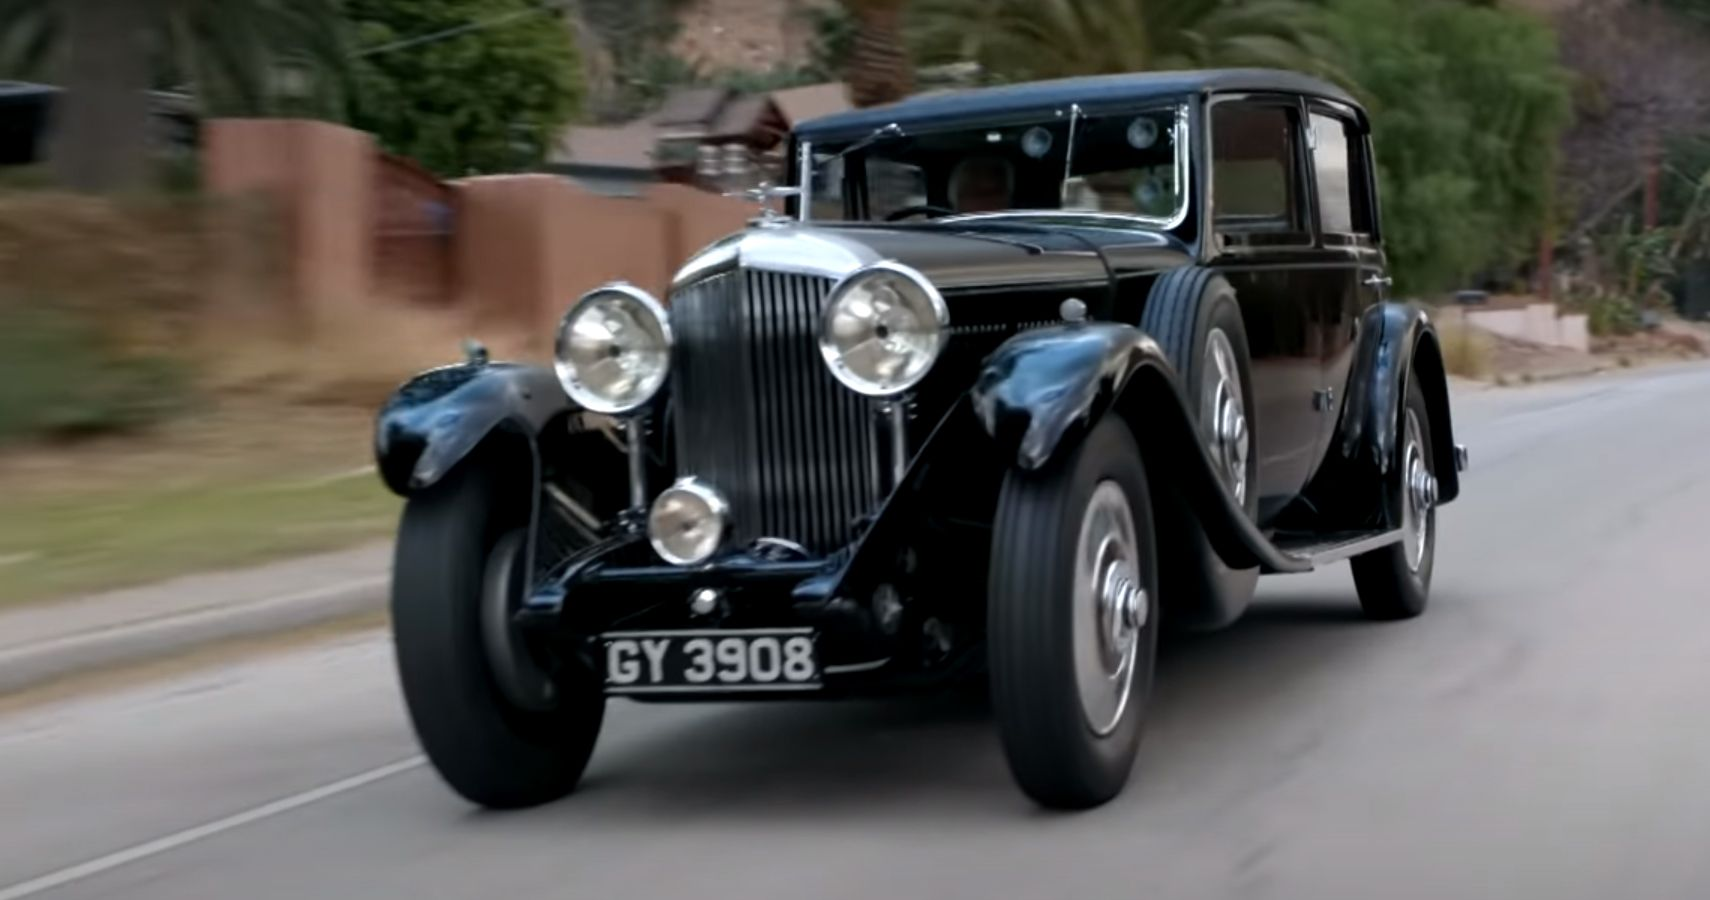 Jay Leno's 1931 Bentley Used To Be A Chicken Coop | HotCars